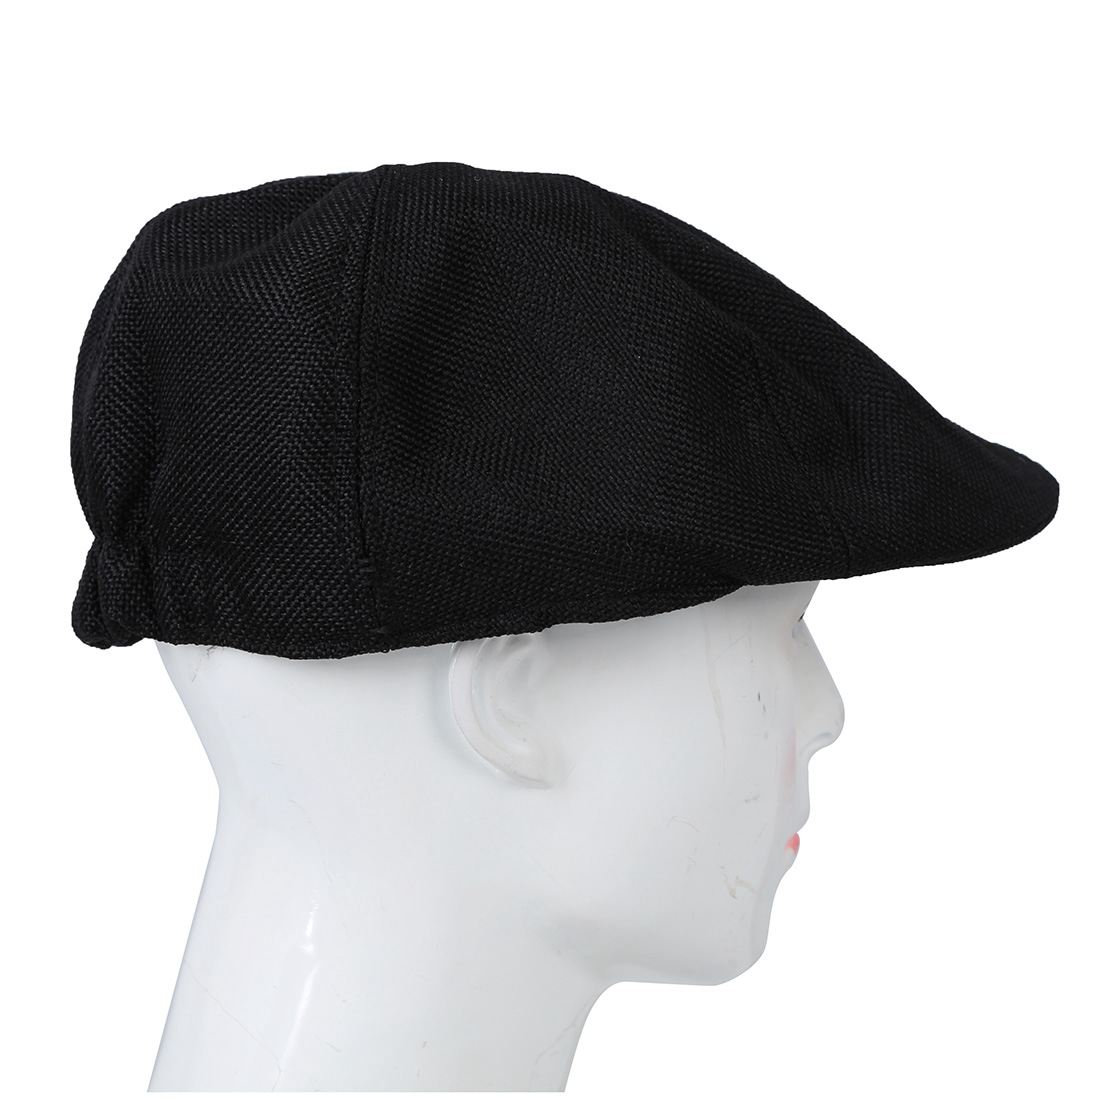 Solid Fluid Systems Gatsby Cap Ivy Hat Golf Driving Summer Sun Flat Cabbie Newsboy-Black